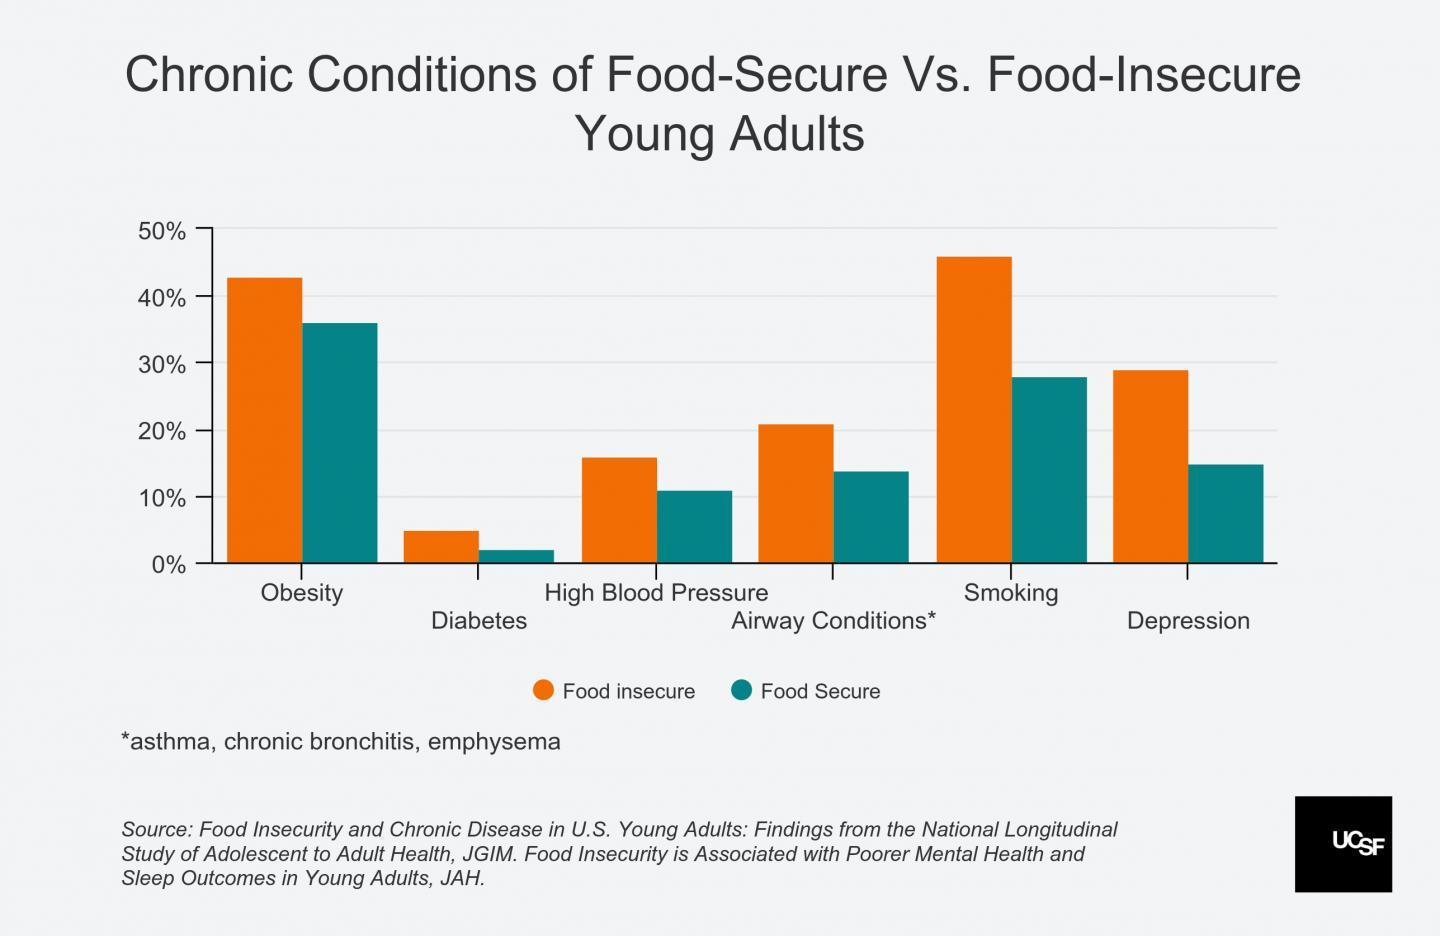 Chronic Conditions of Food-Secure Vs. Food-Insecure Young Adults